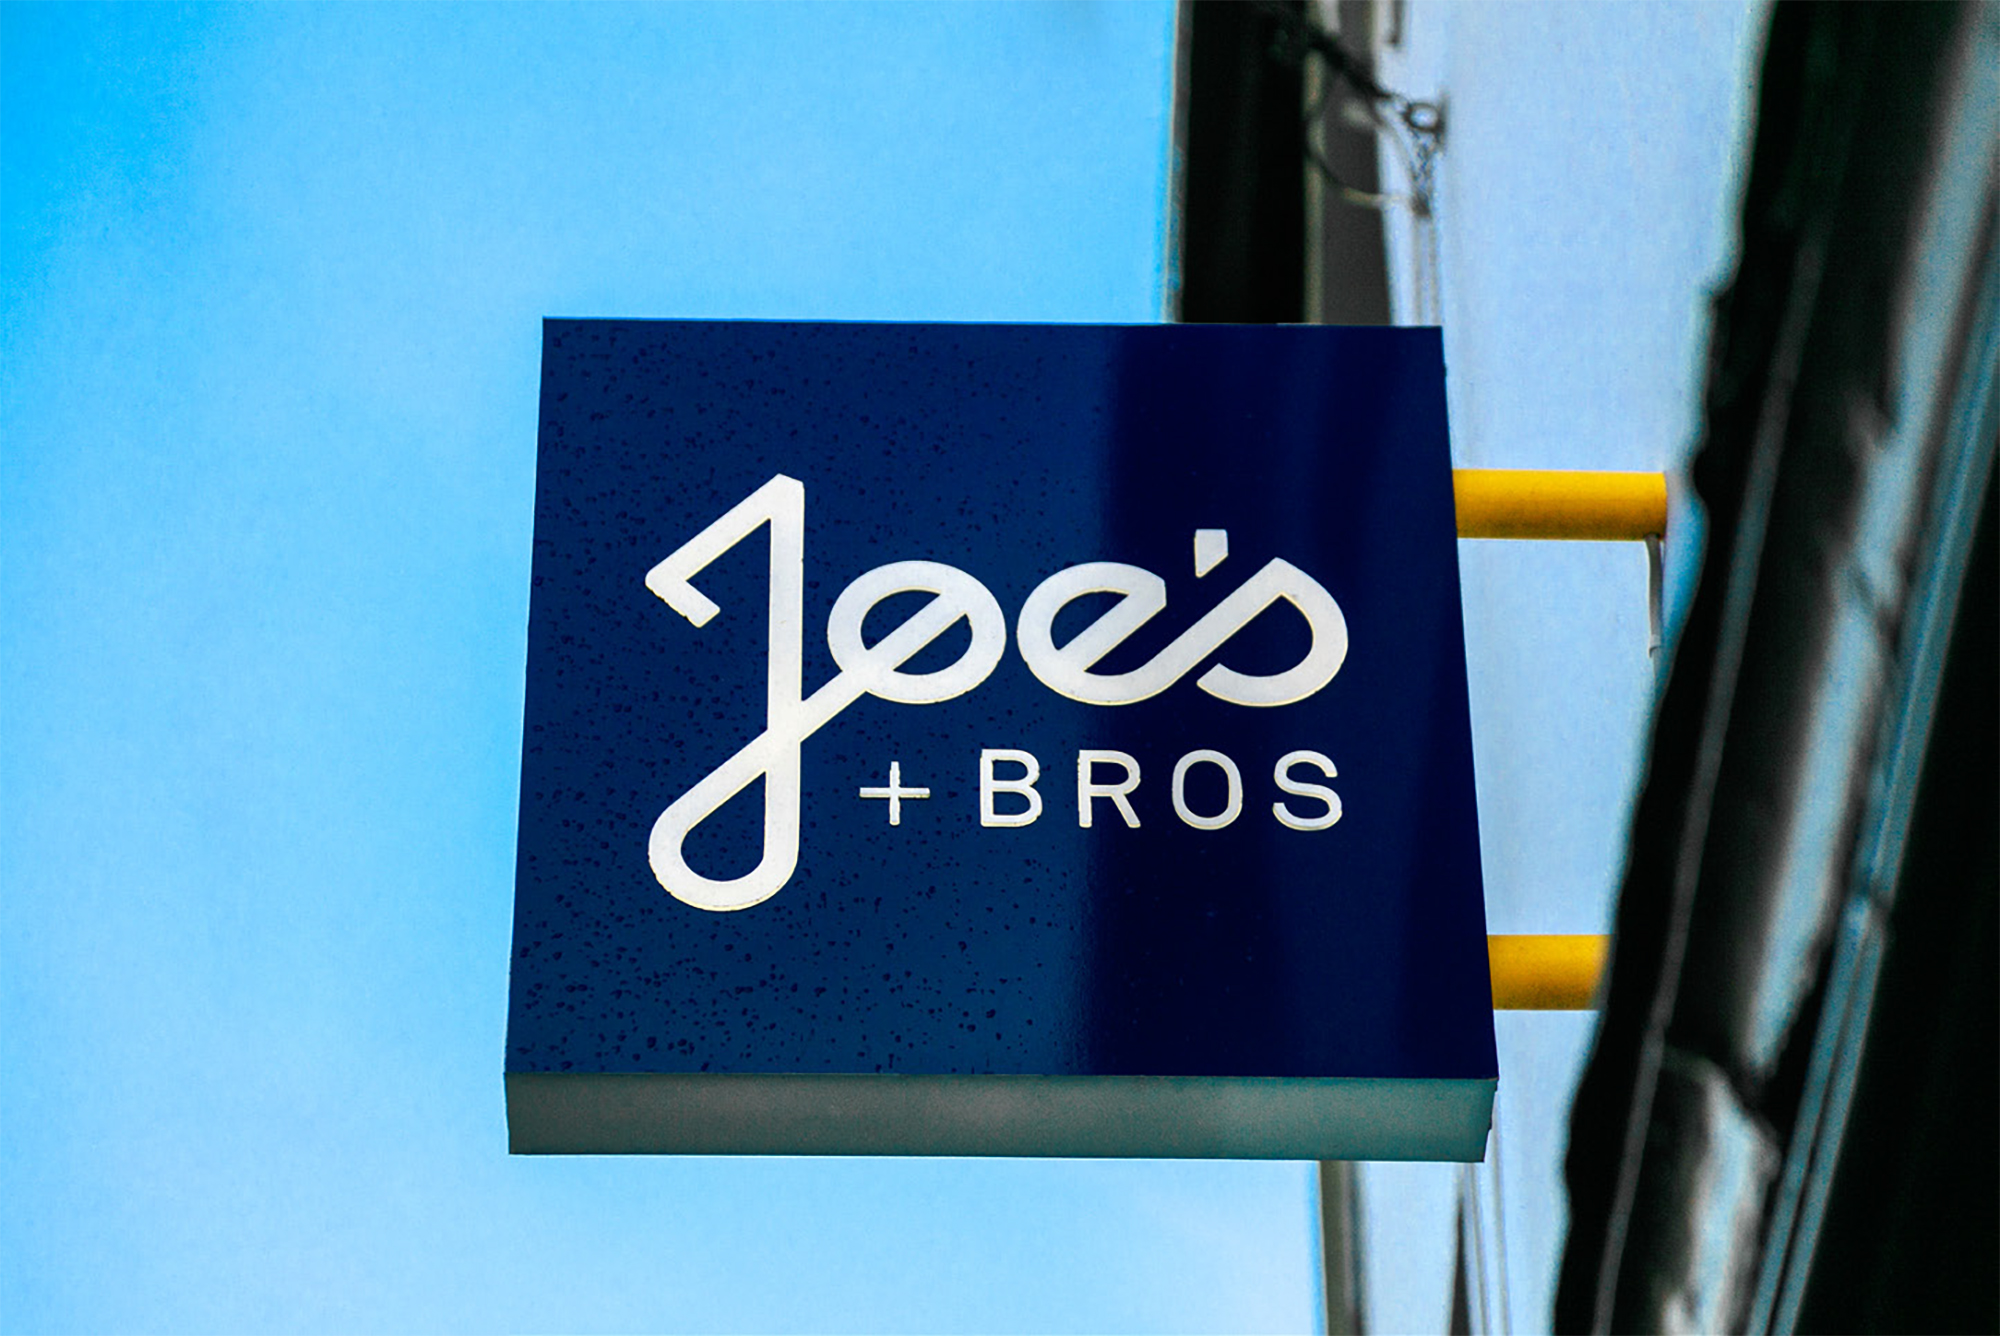 Cover image: Joe's + Bros